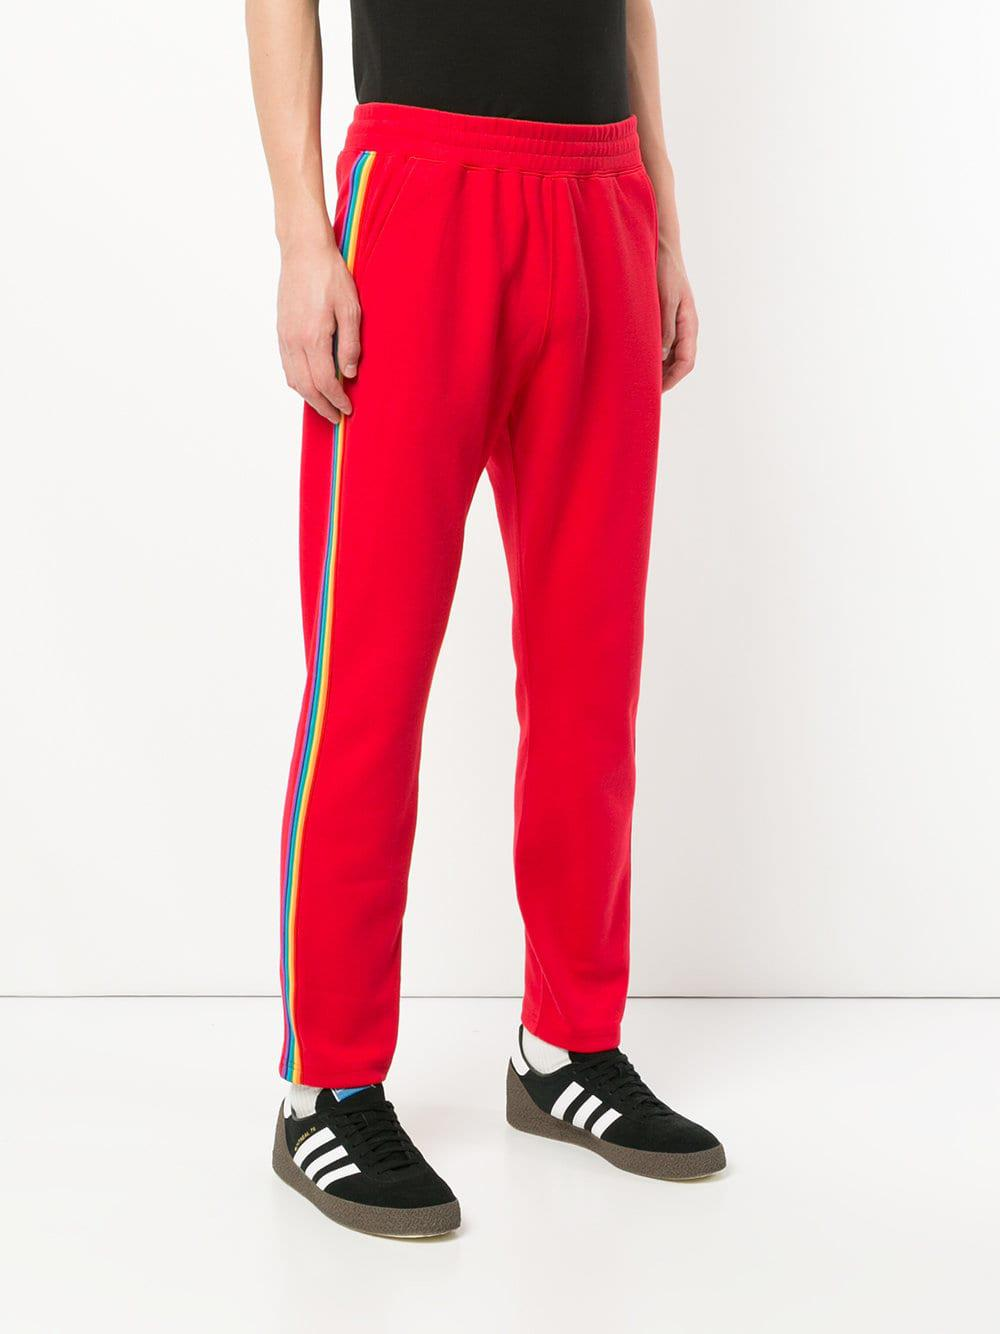 Guild Prime Cotton Exclusive For Farfetch Track Trousers in Red for Men